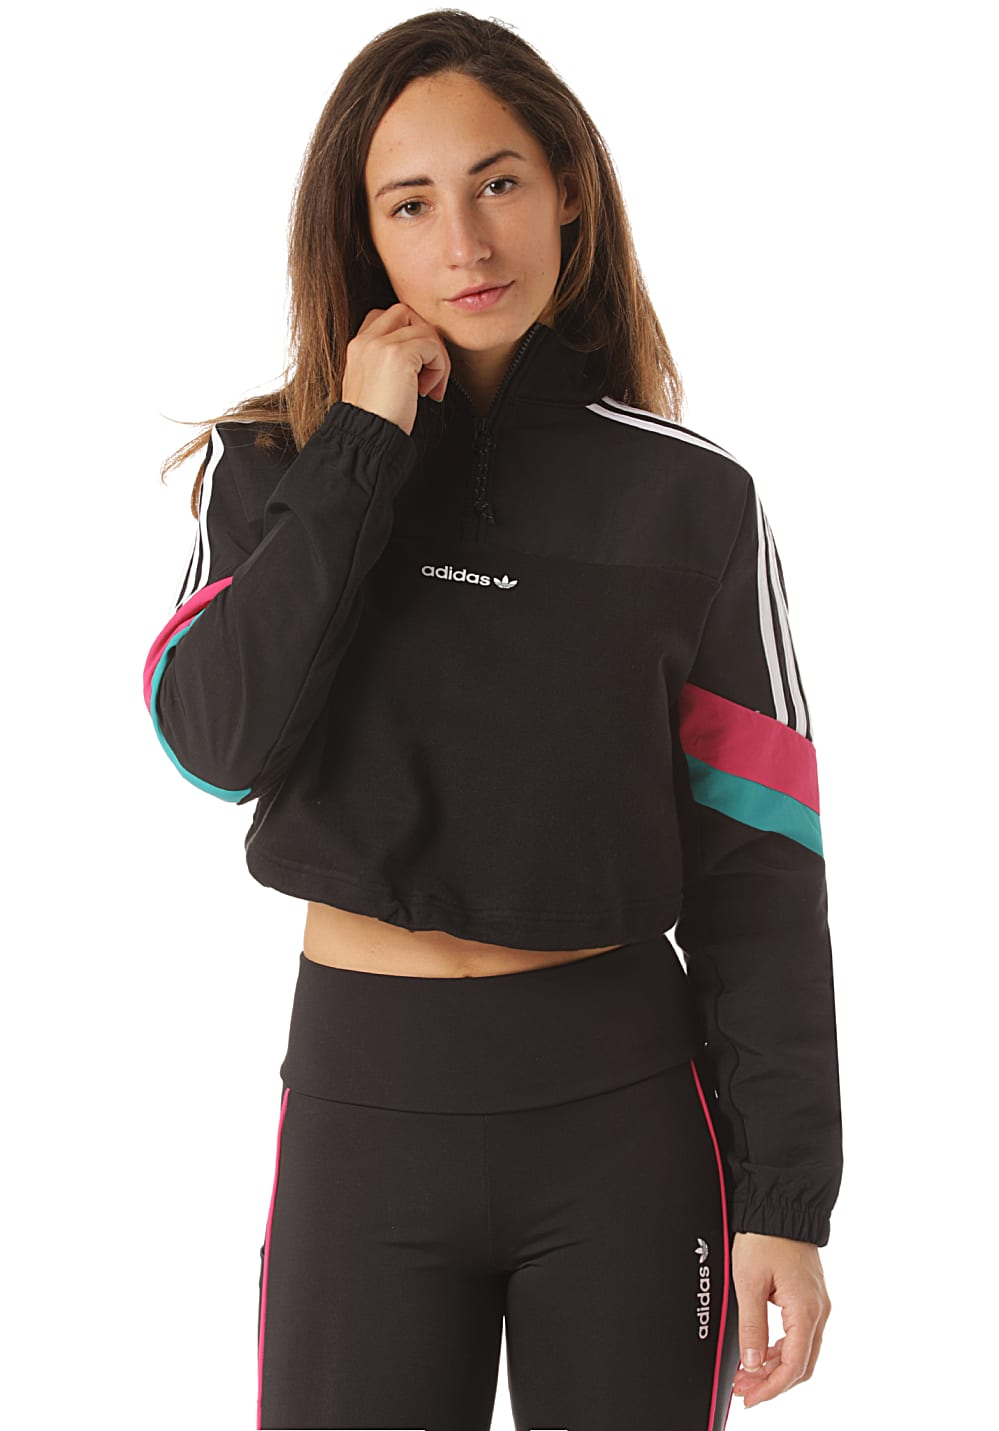 adidas Originals HZ Cropped Sweatshirt für Damen Schwarz